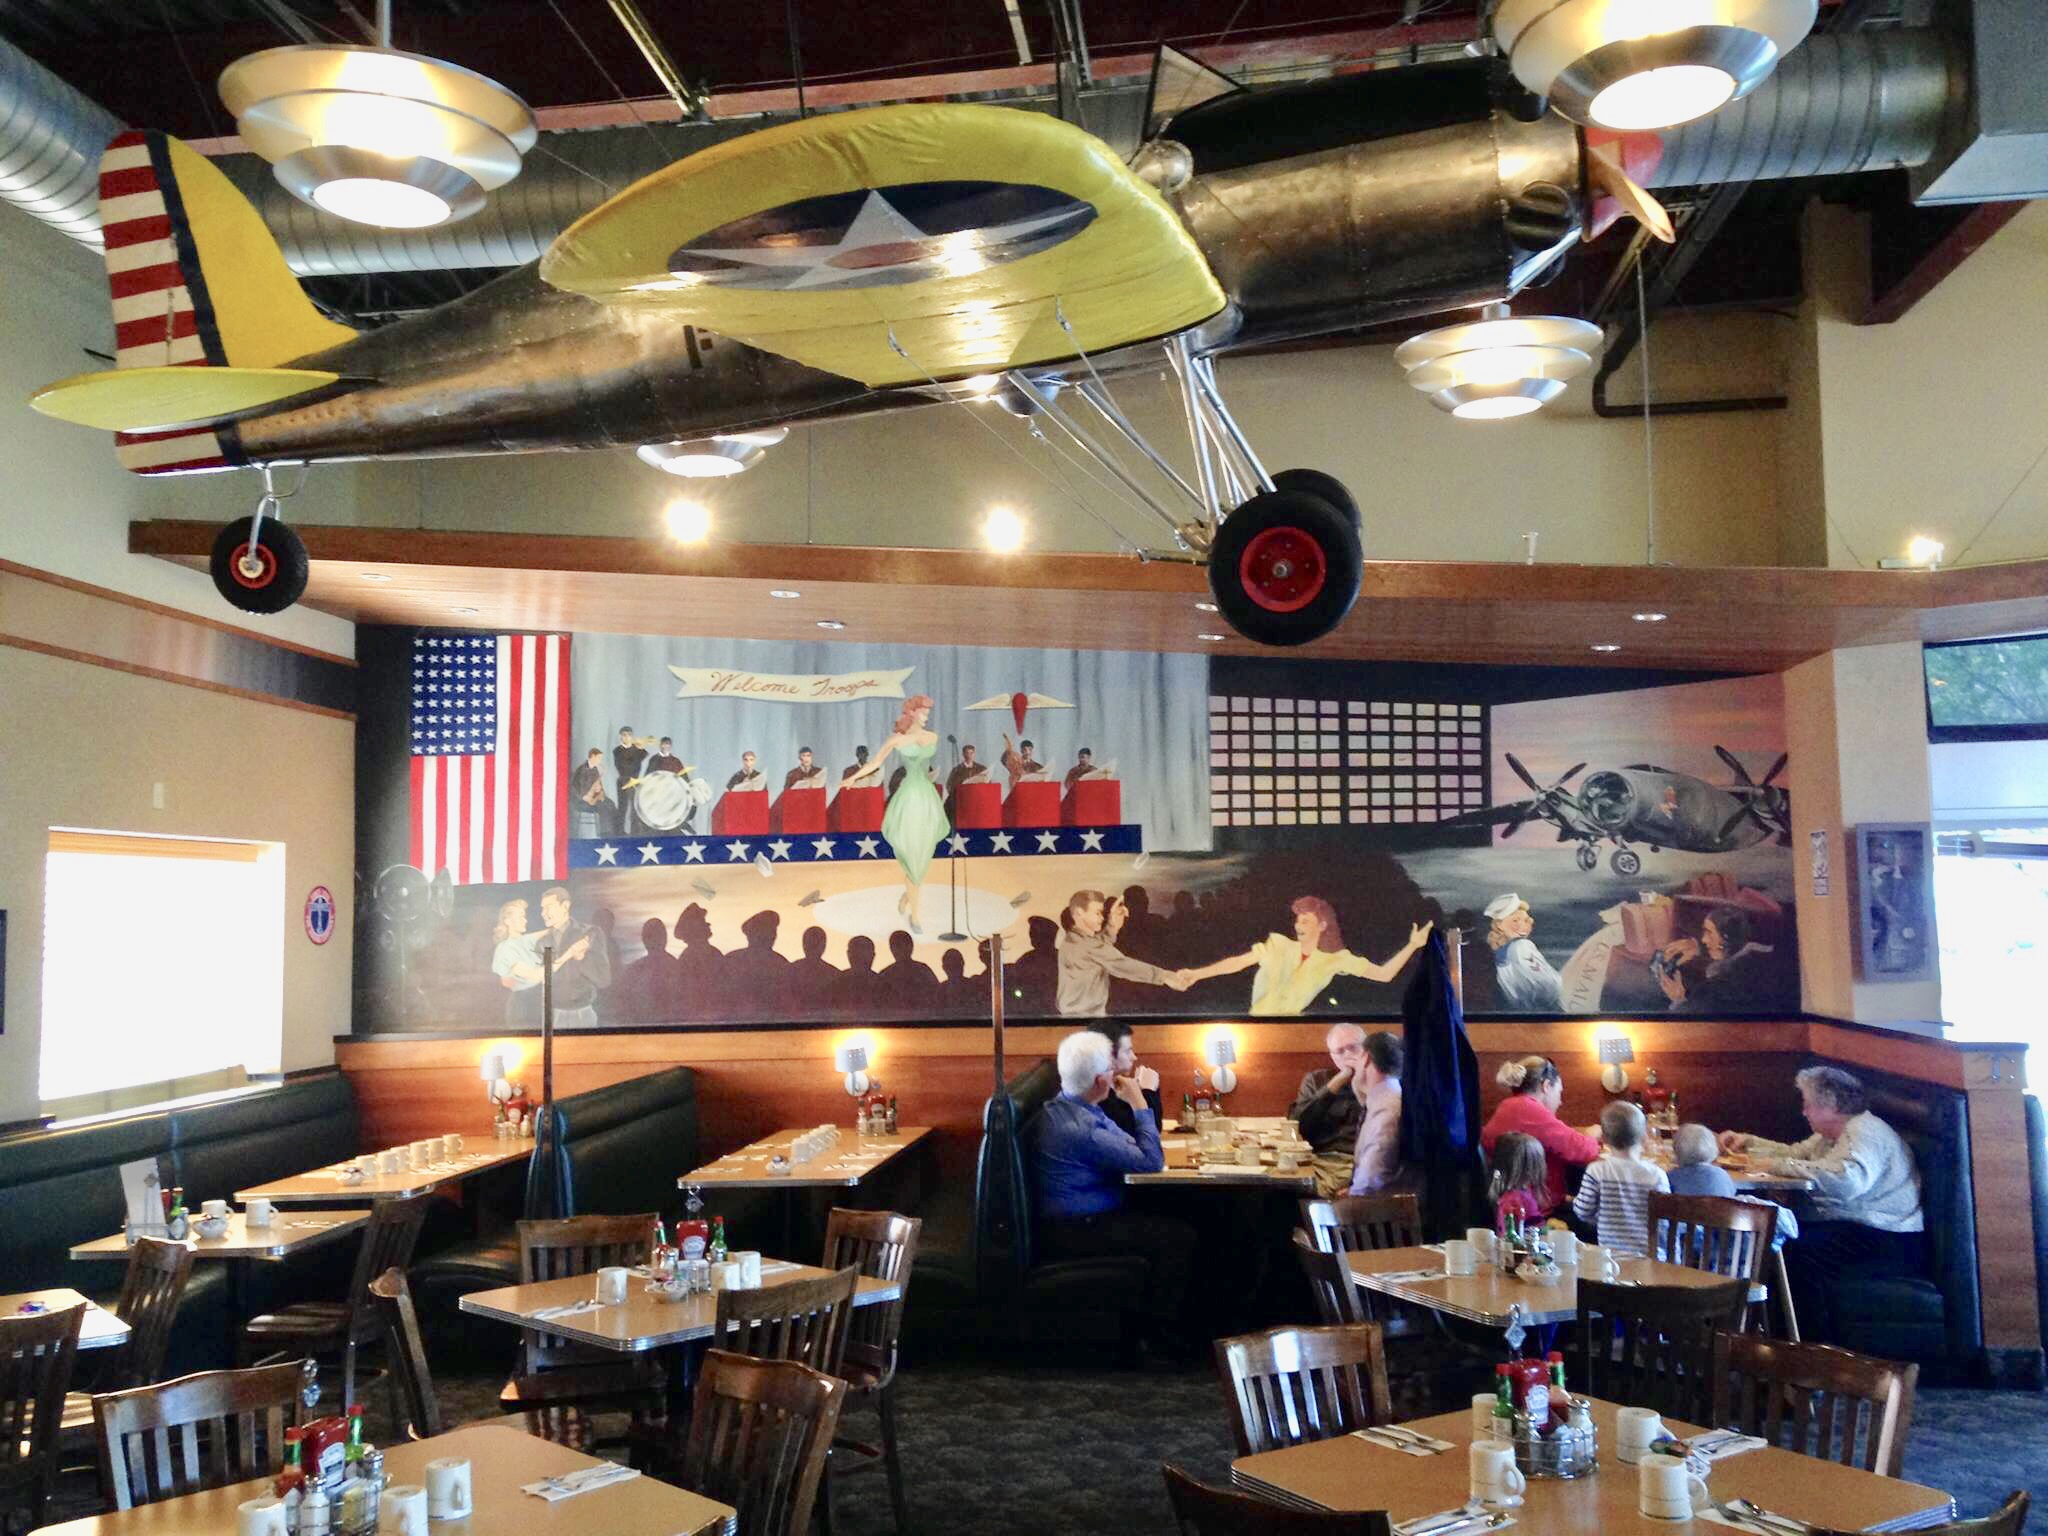 A USO Themed mural for the Crystal Creek Cafe in Millcreek, WA.